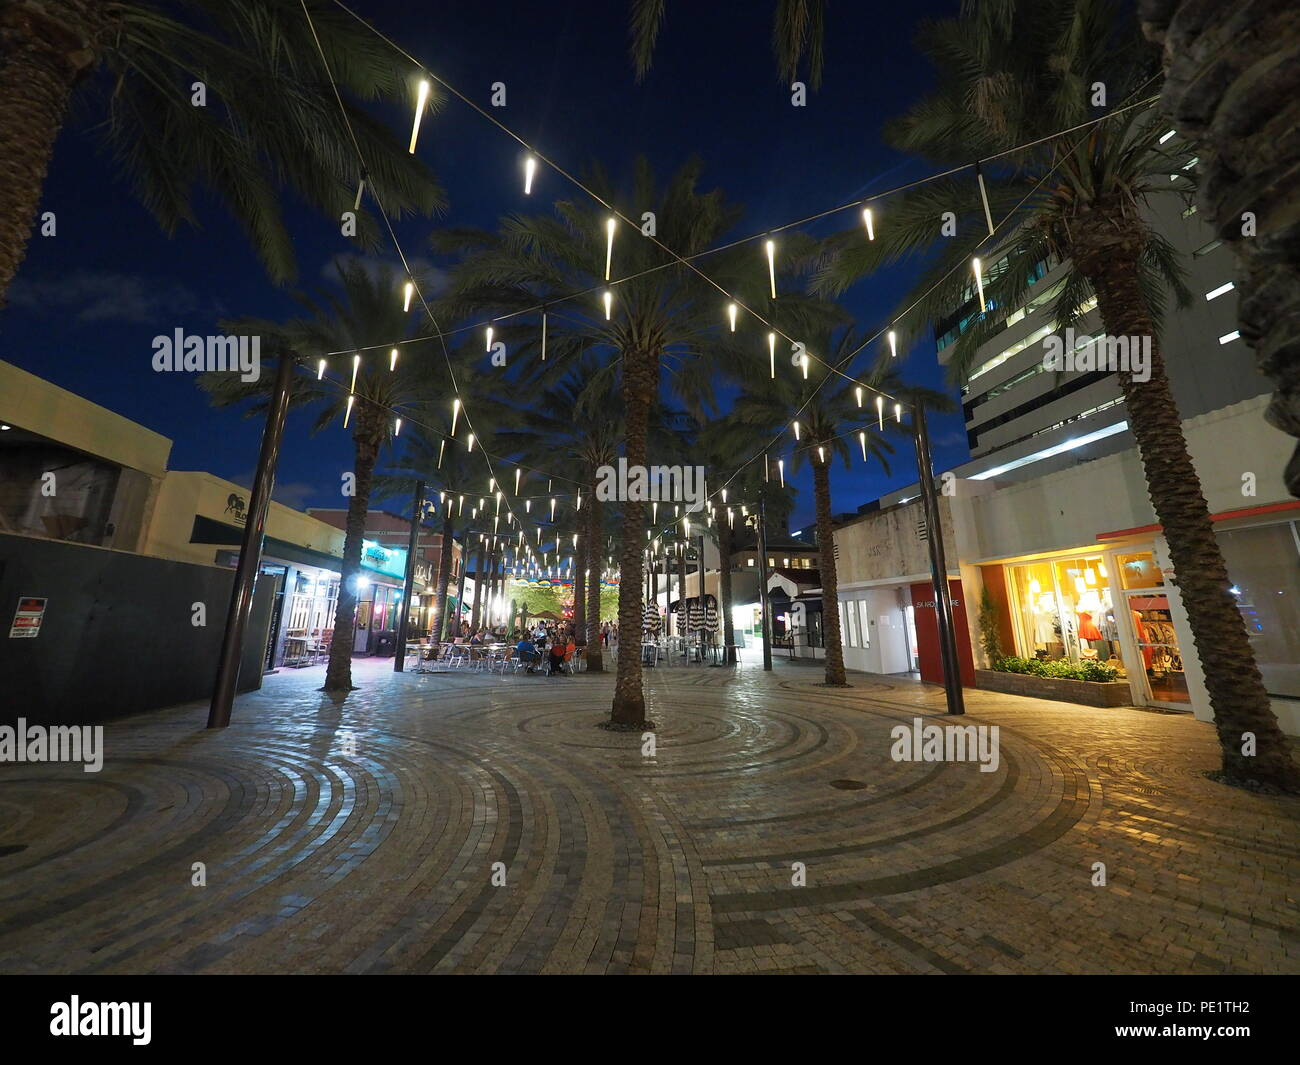 Giralda  Plaza and its restaurants and bars in Coral Gables, Florida, at night, enjoying heavy visitation during the Umbrella Sky project. Stock Photo